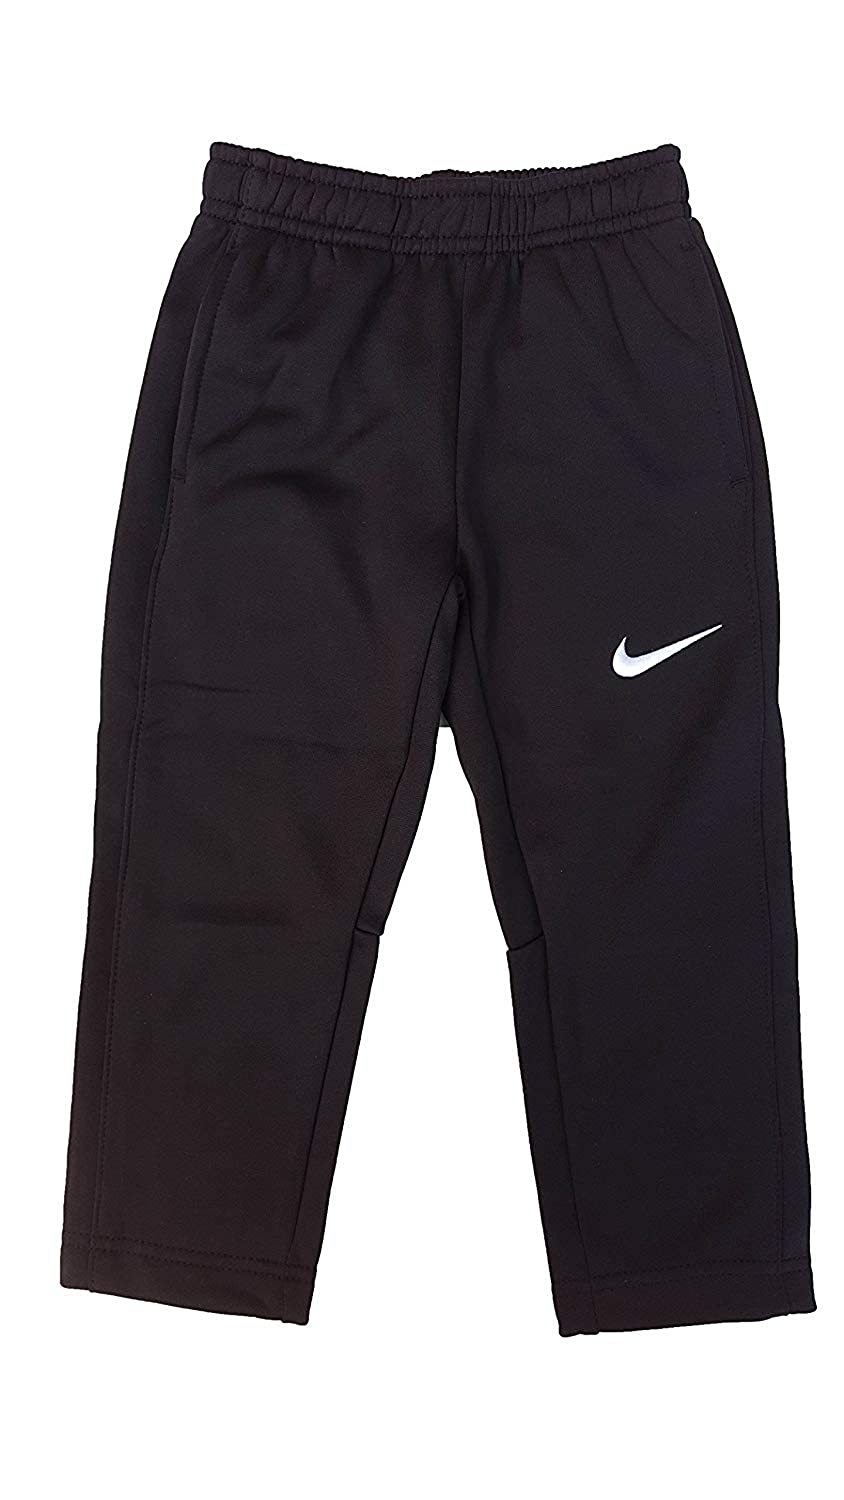 NIKE Little Boys Toddler Therma Sweatpants Sizes 2T - 4T